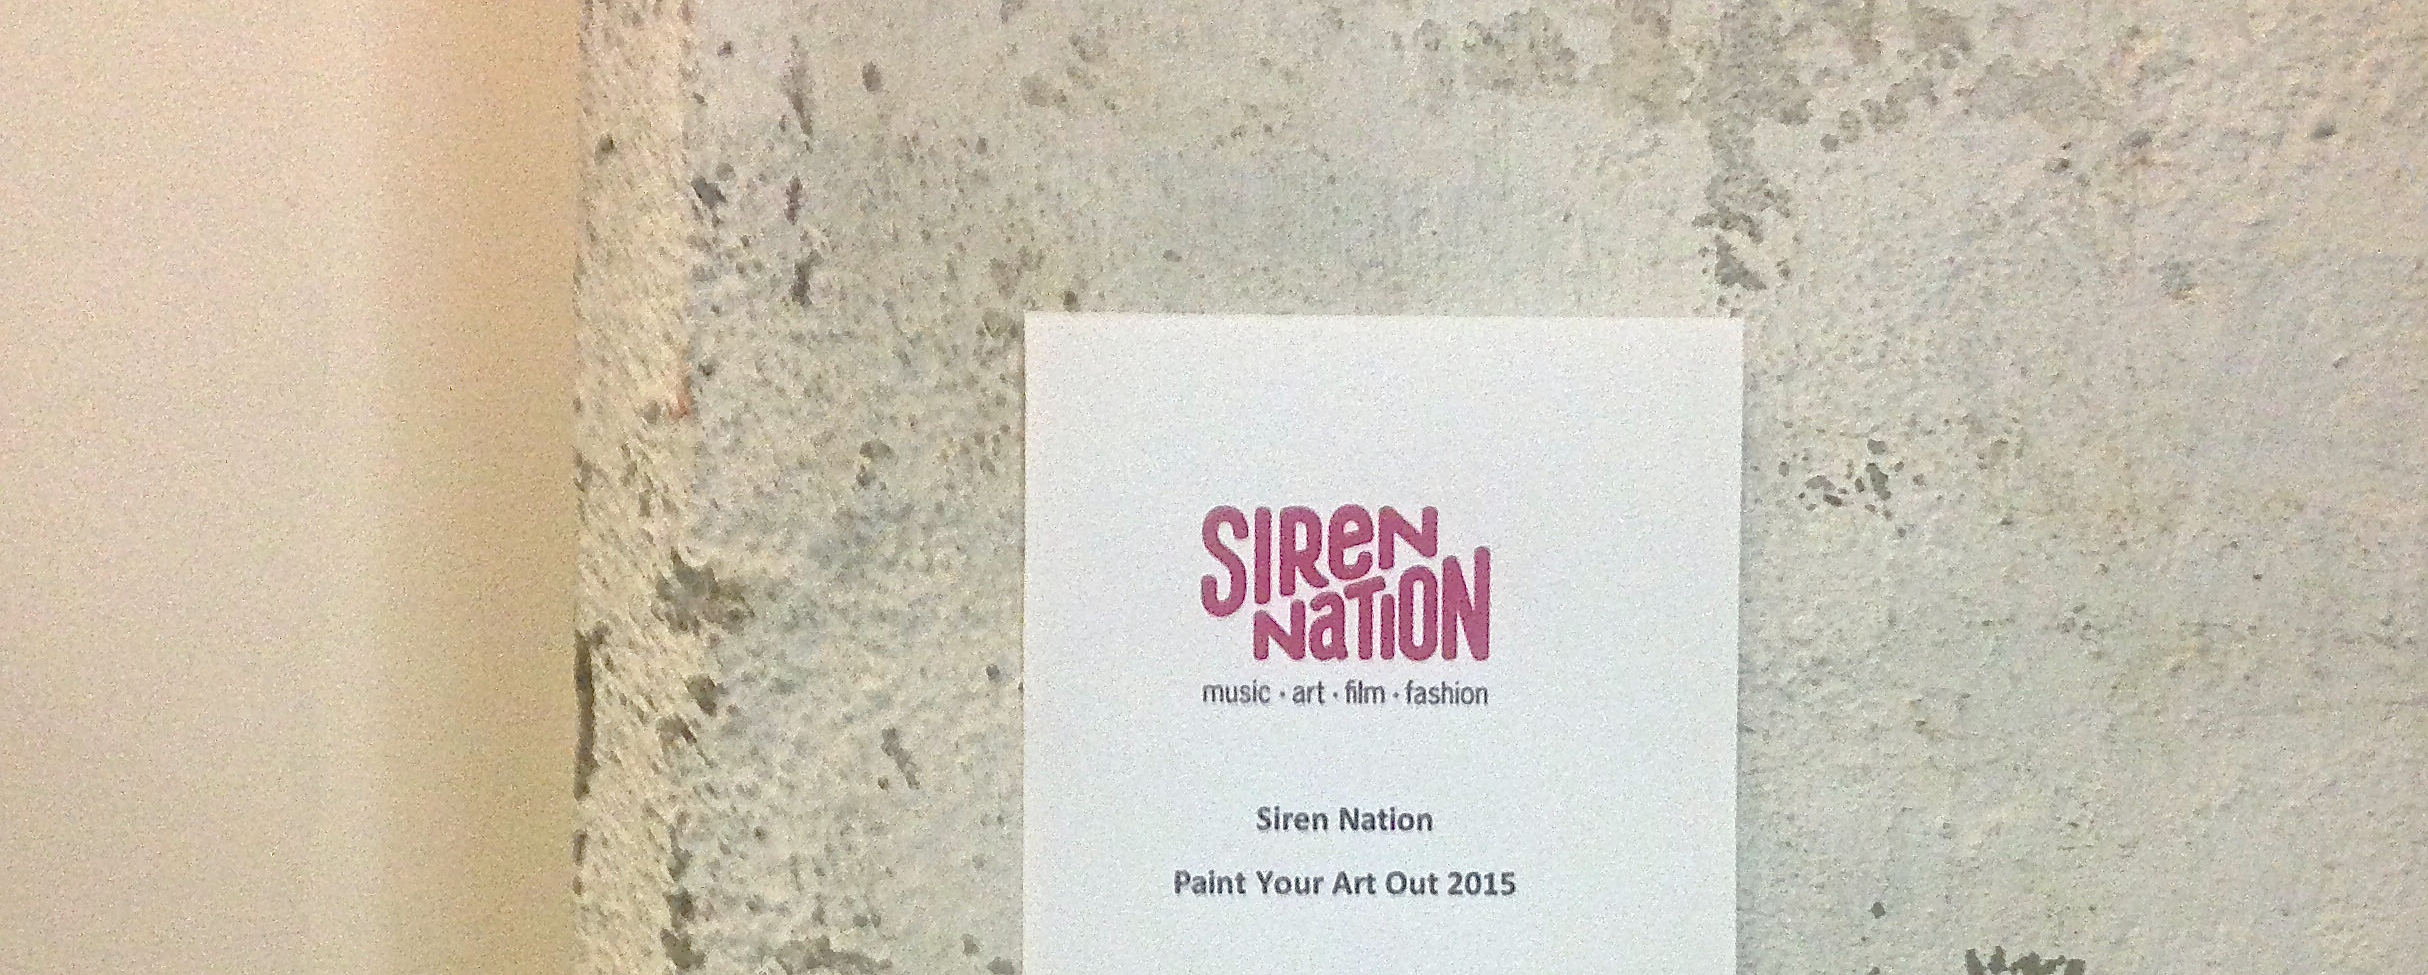 Siren Nation is a nonprofit organization devoted to inspiring women in the arts. Our mission is to inspire and empower women of all ages to create their own art and to highlight the many achievements of women in the arts.